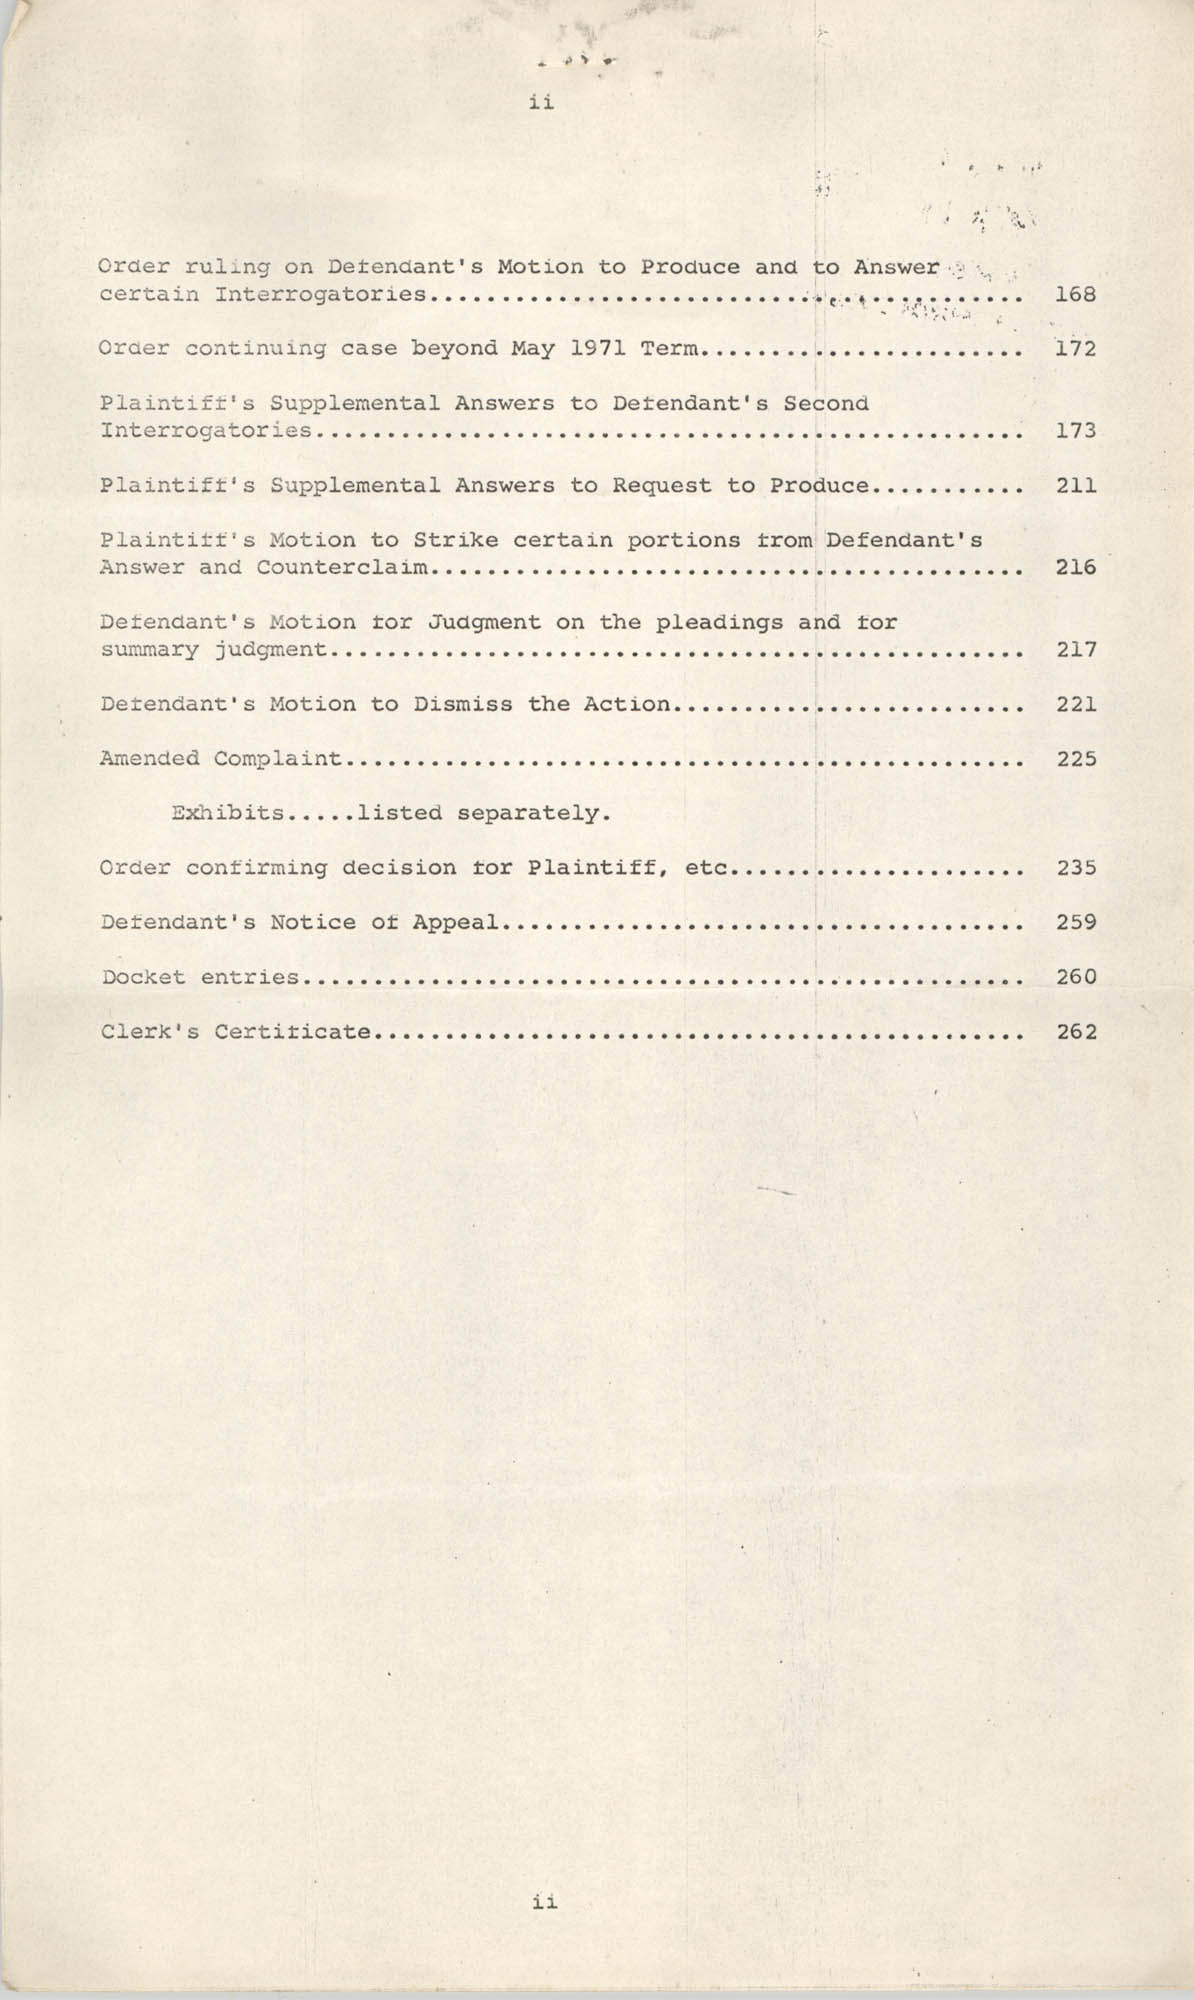 Index to Appeal Record, National Board of the Y.W.C.A. of U.S.A. vs. Y.W.C.A. of Charleston, S. C., Civil Action No. 70-180, Page 2